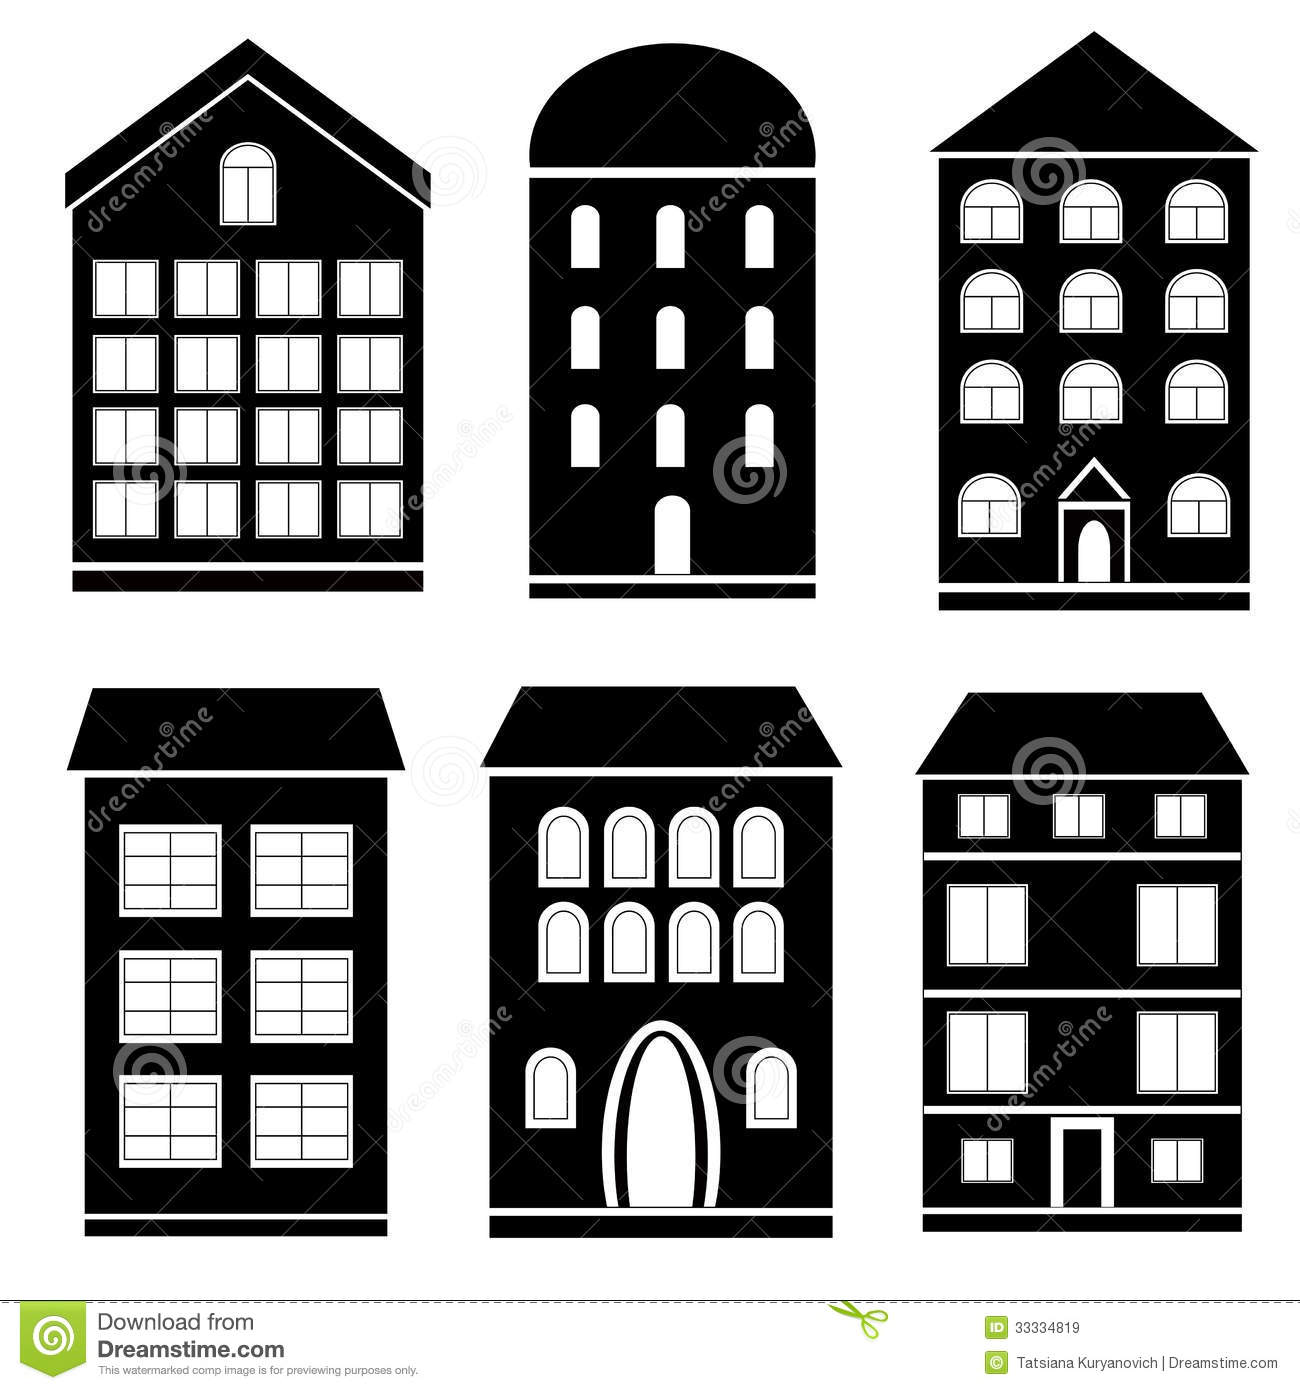 Apartment Building Clipart Black And White Building black and.